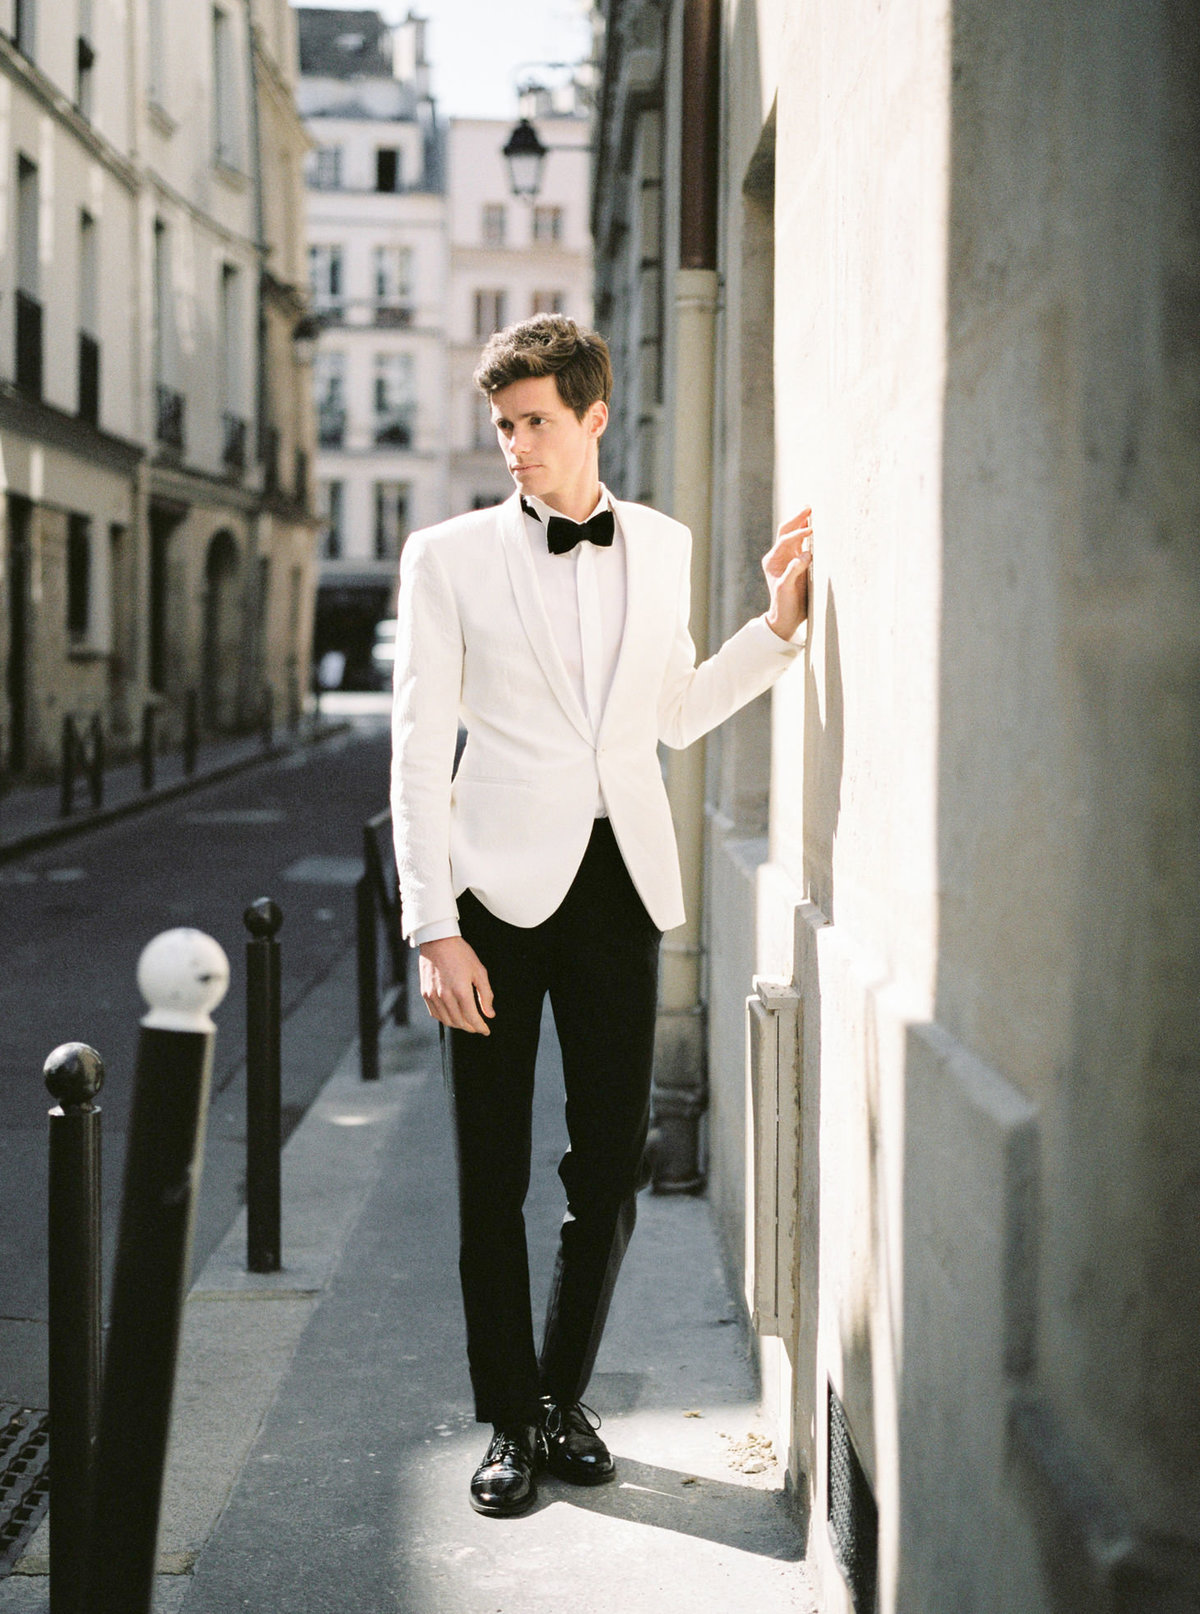 Paris_wedding_photographer_claire_Morris_127